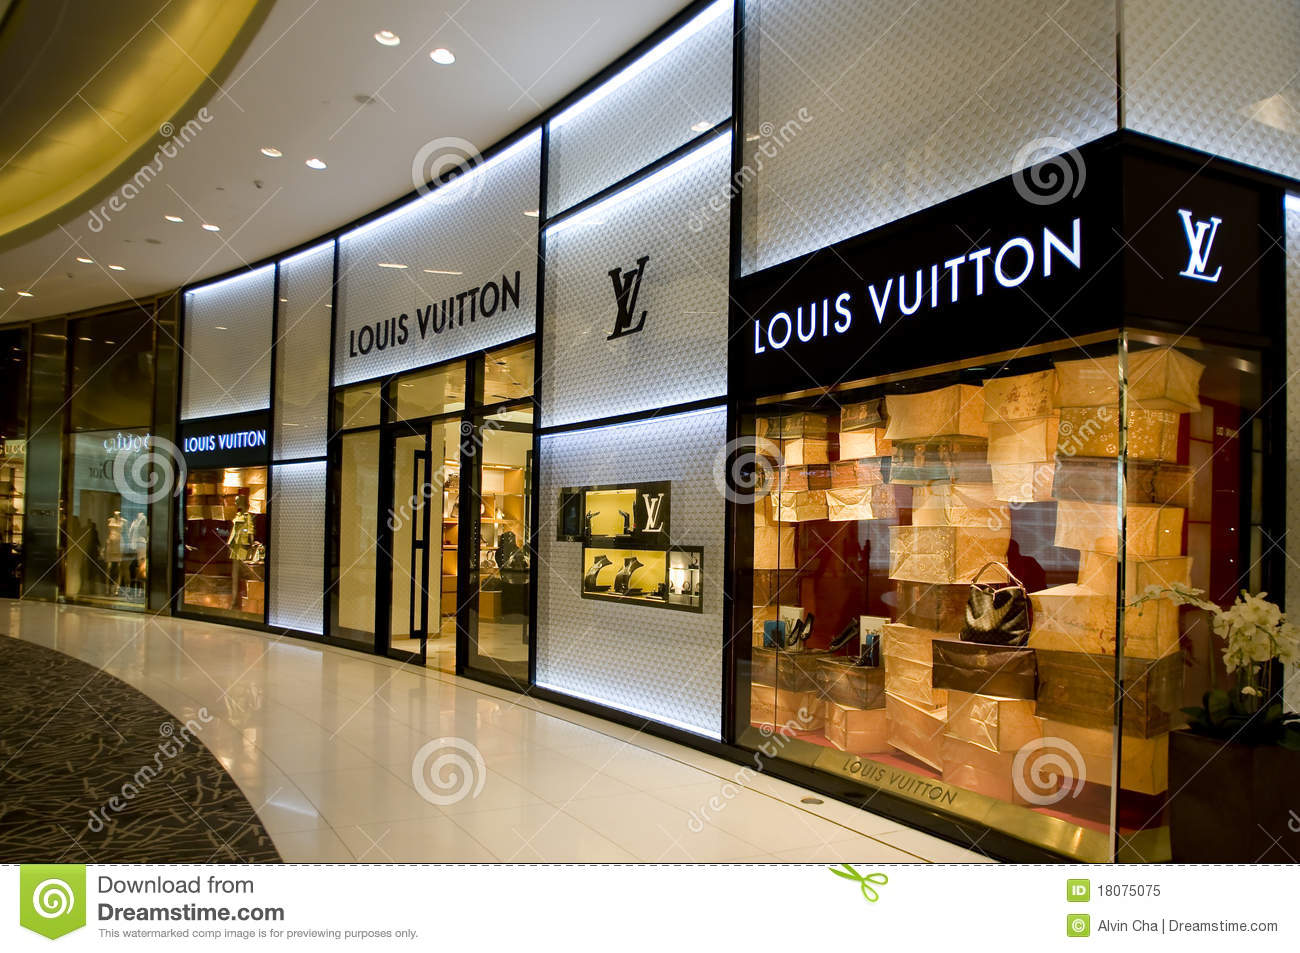 b8d4a5e9226 Louis Vuitton Shop Window Display Editorial Image - Image of trade ...